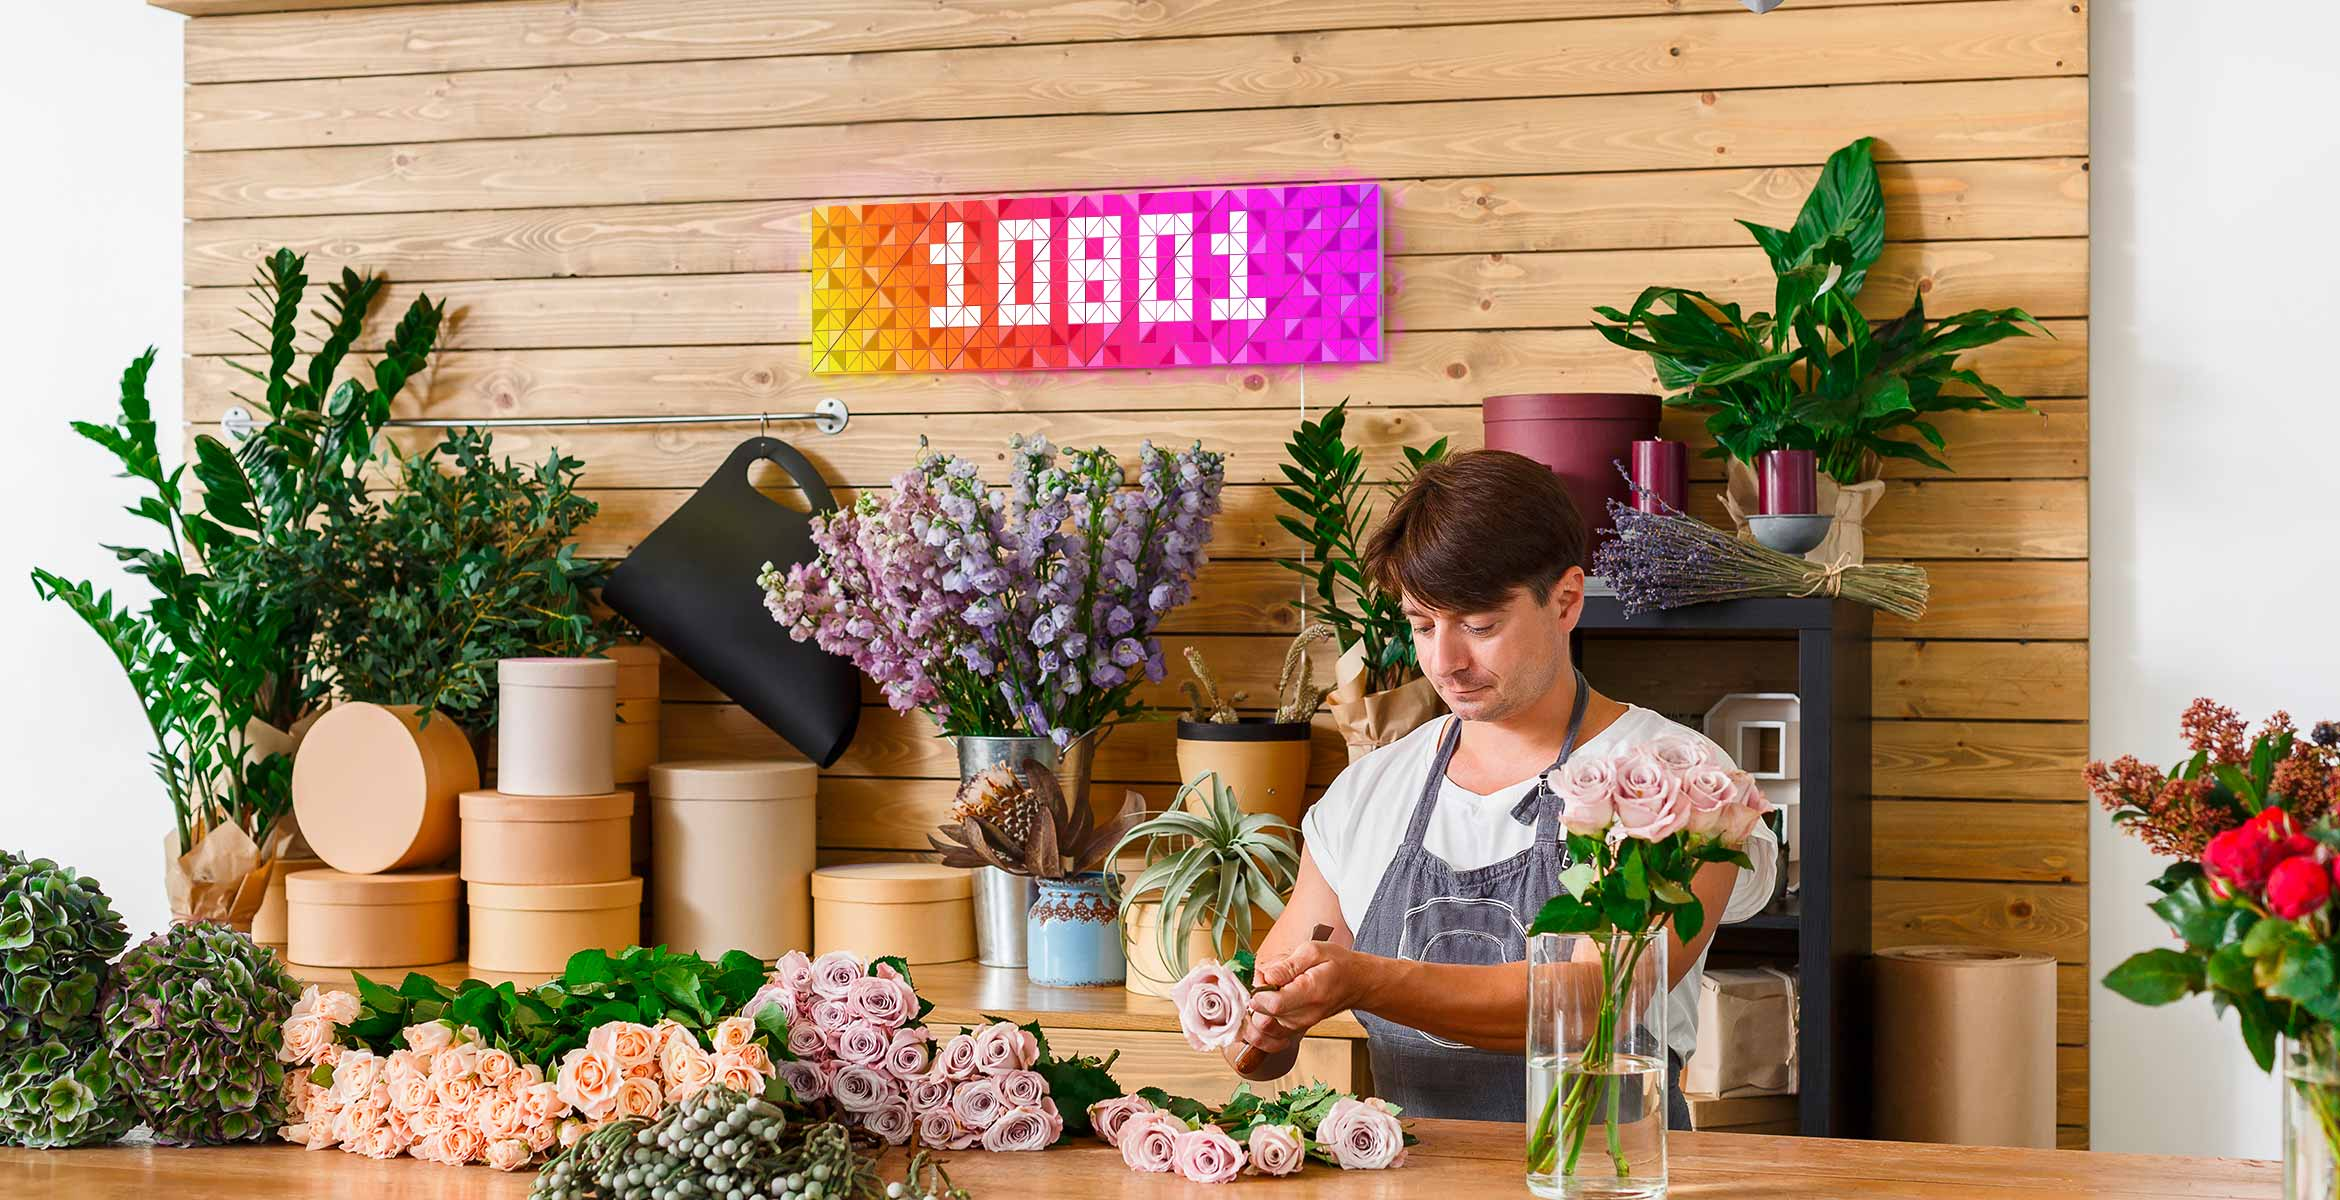 Infoscreen, assembled from 16 smart light surfaces, complements interior of flower shop and displays Instagram follower count